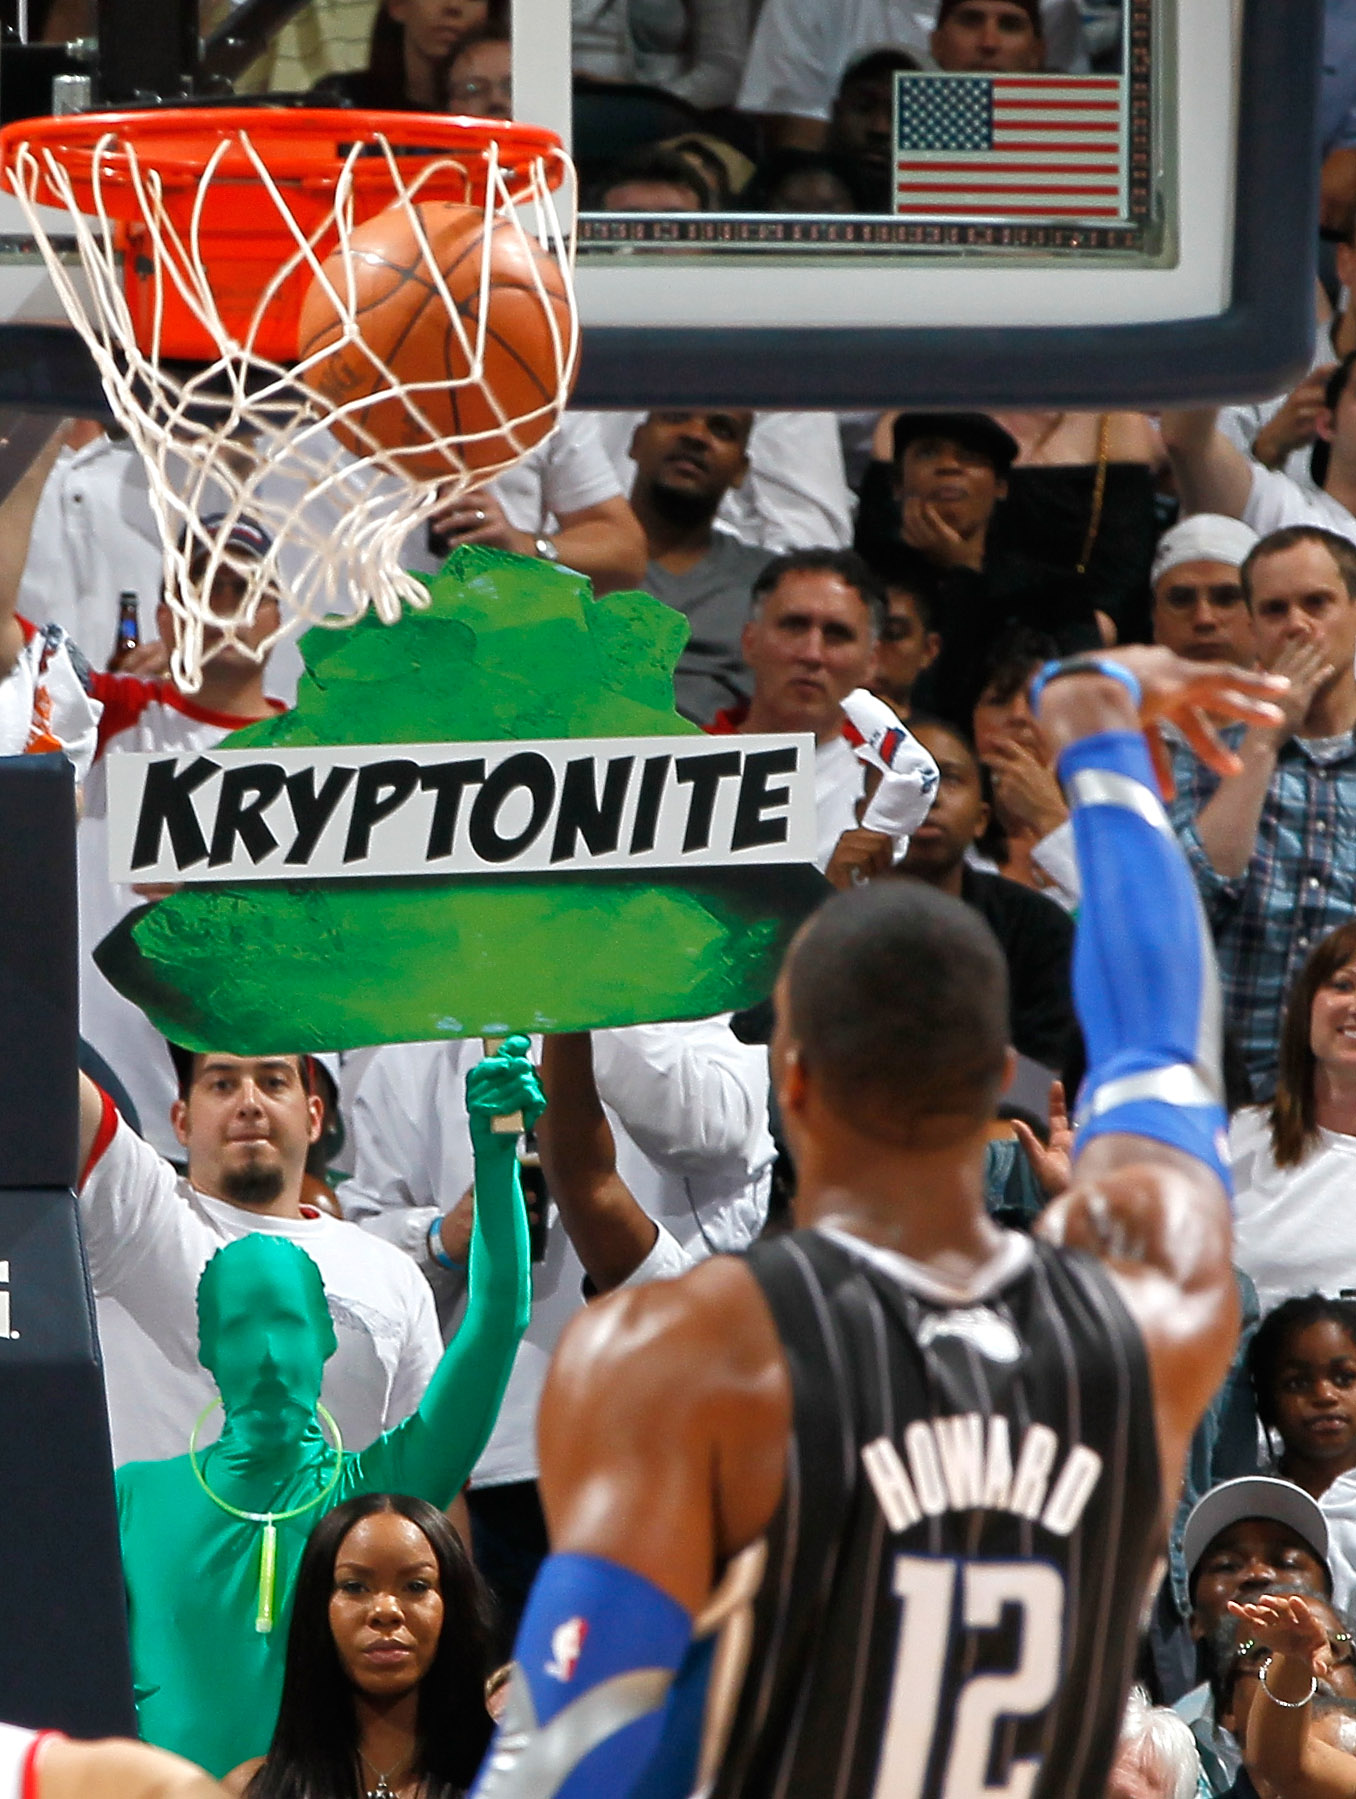 ATLANTA, GA - APRIL 28:  Dwight Howard #12 of the Orlando Magic makes a free throw while a fan holds up a neon green sign with the words 'Kryptonite' on it during Game Six of the Eastern Conference Quarterfinals in the 2011 NBA Playoffs against the Atlant